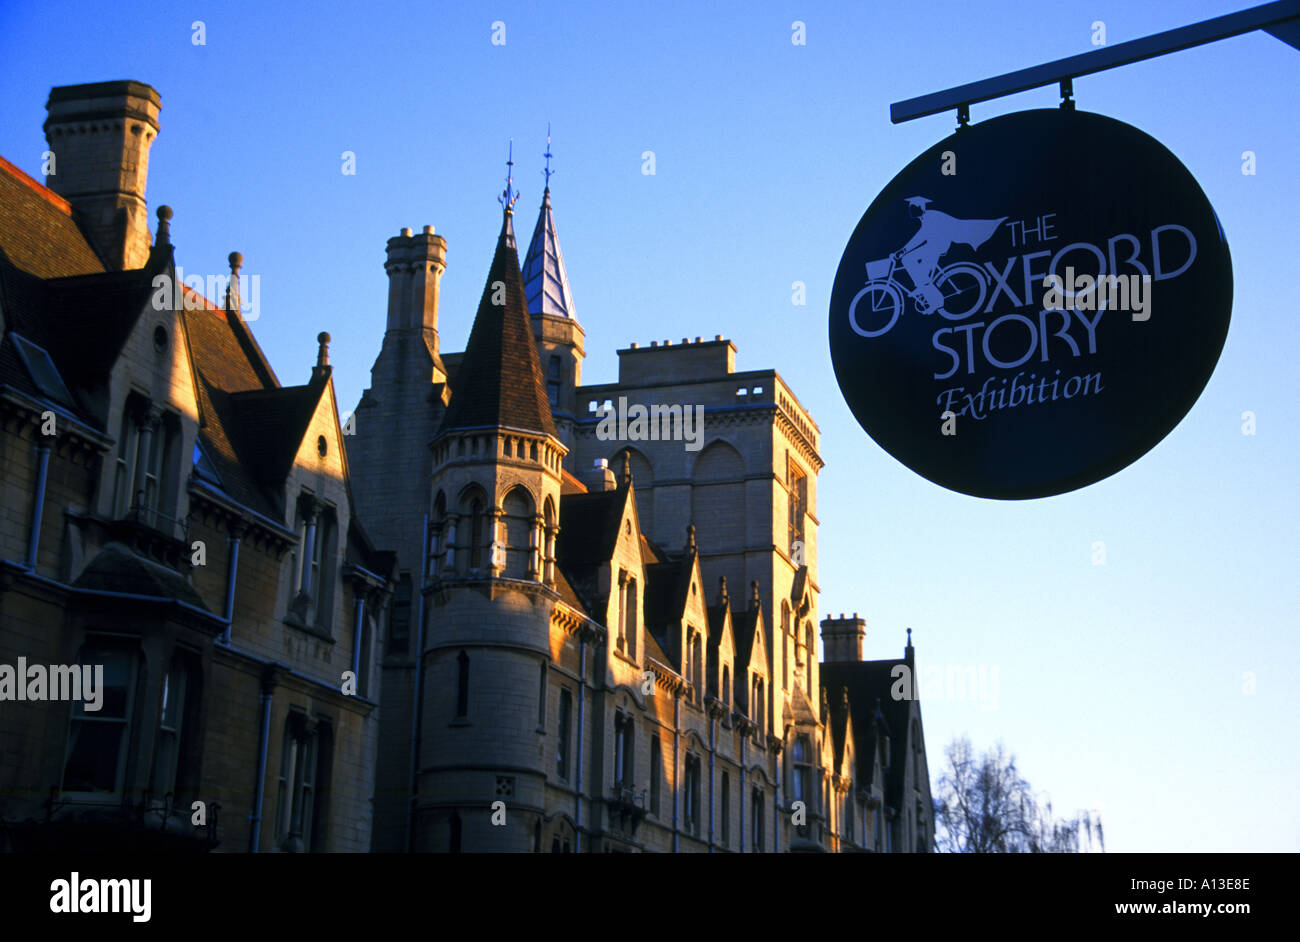 The Oxford Story Museum - Stock Image